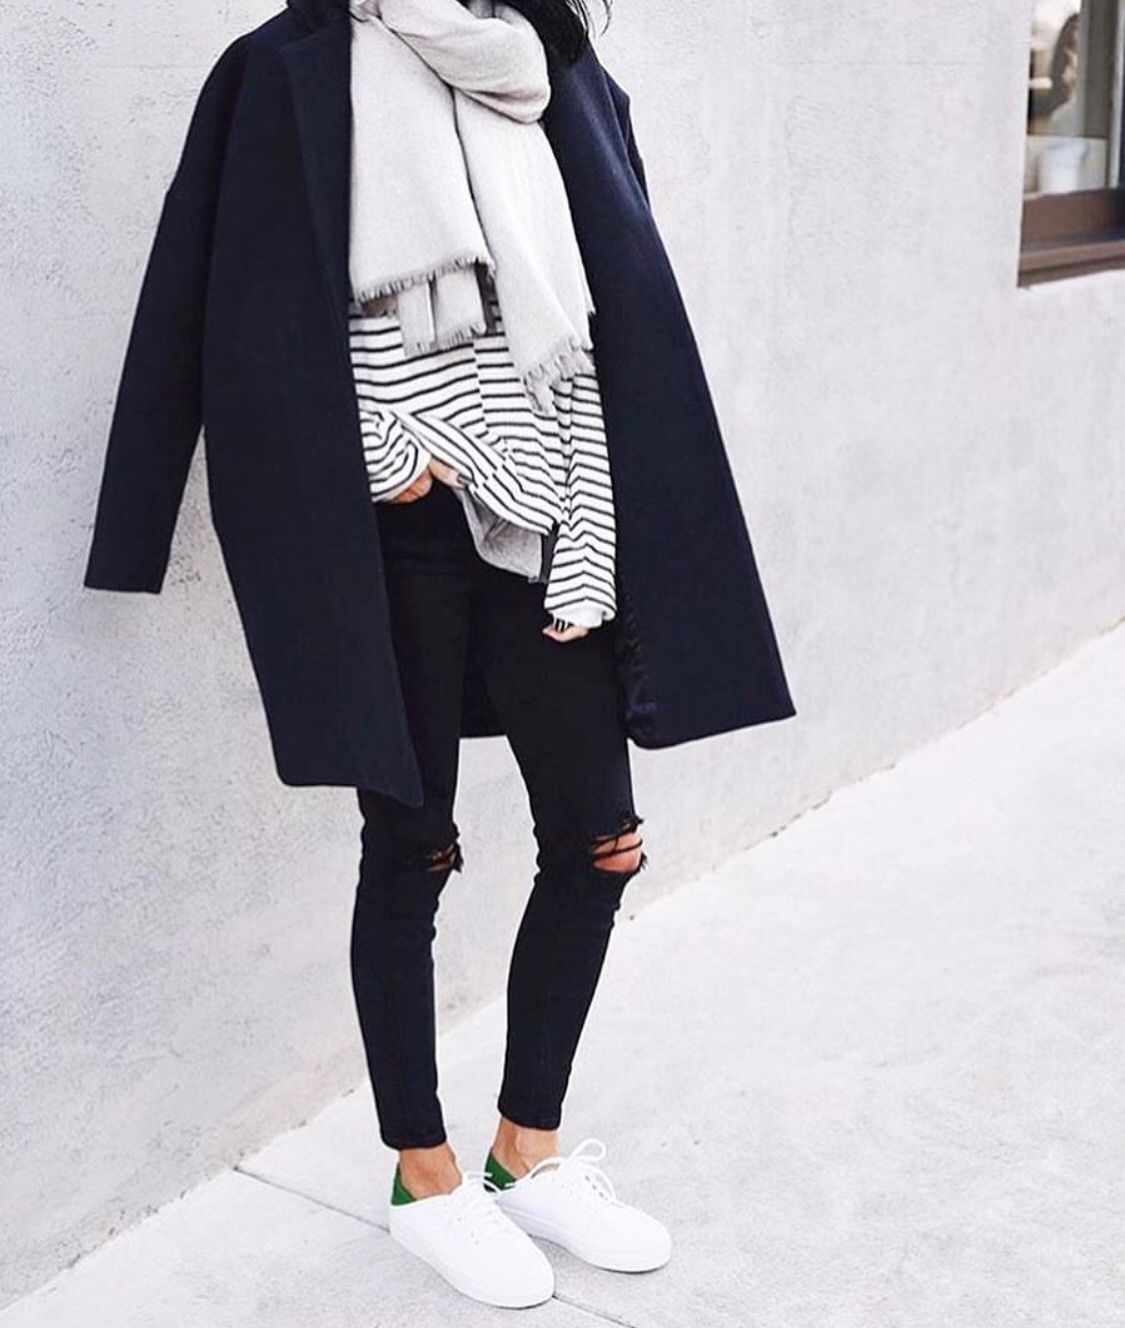 Casual Wear What To Capsule Wardrobe Neutrals Chic Hipsters Street Style Layers